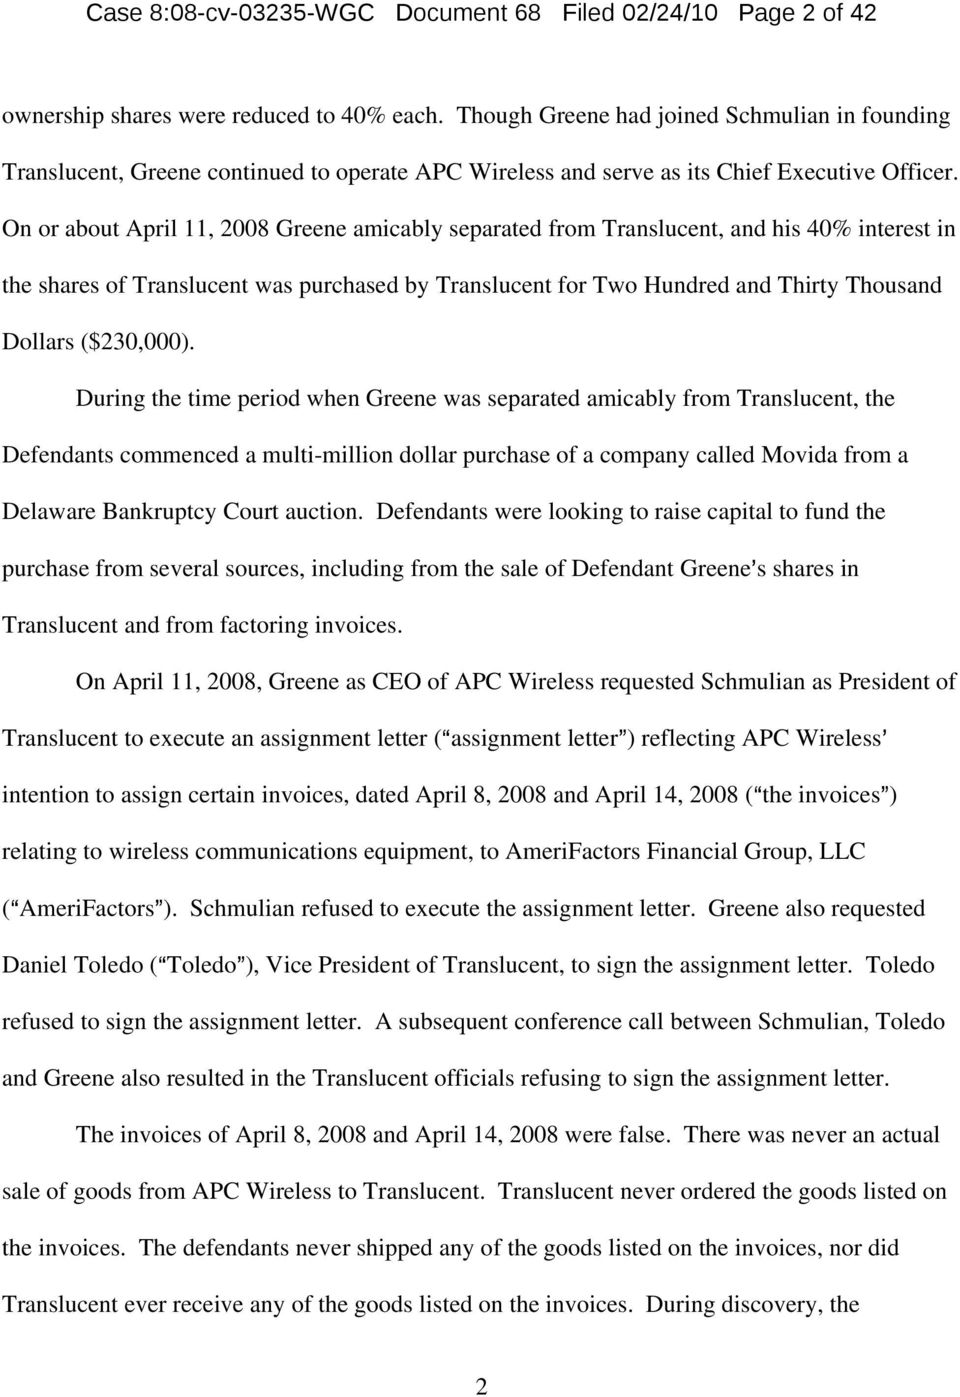 On or about April 11, 2008 Greene amicably separated from Translucent, and his 40% interest in the shares of Translucent was purchased by Translucent for Two Hundred and Thirty Thousand Dollars